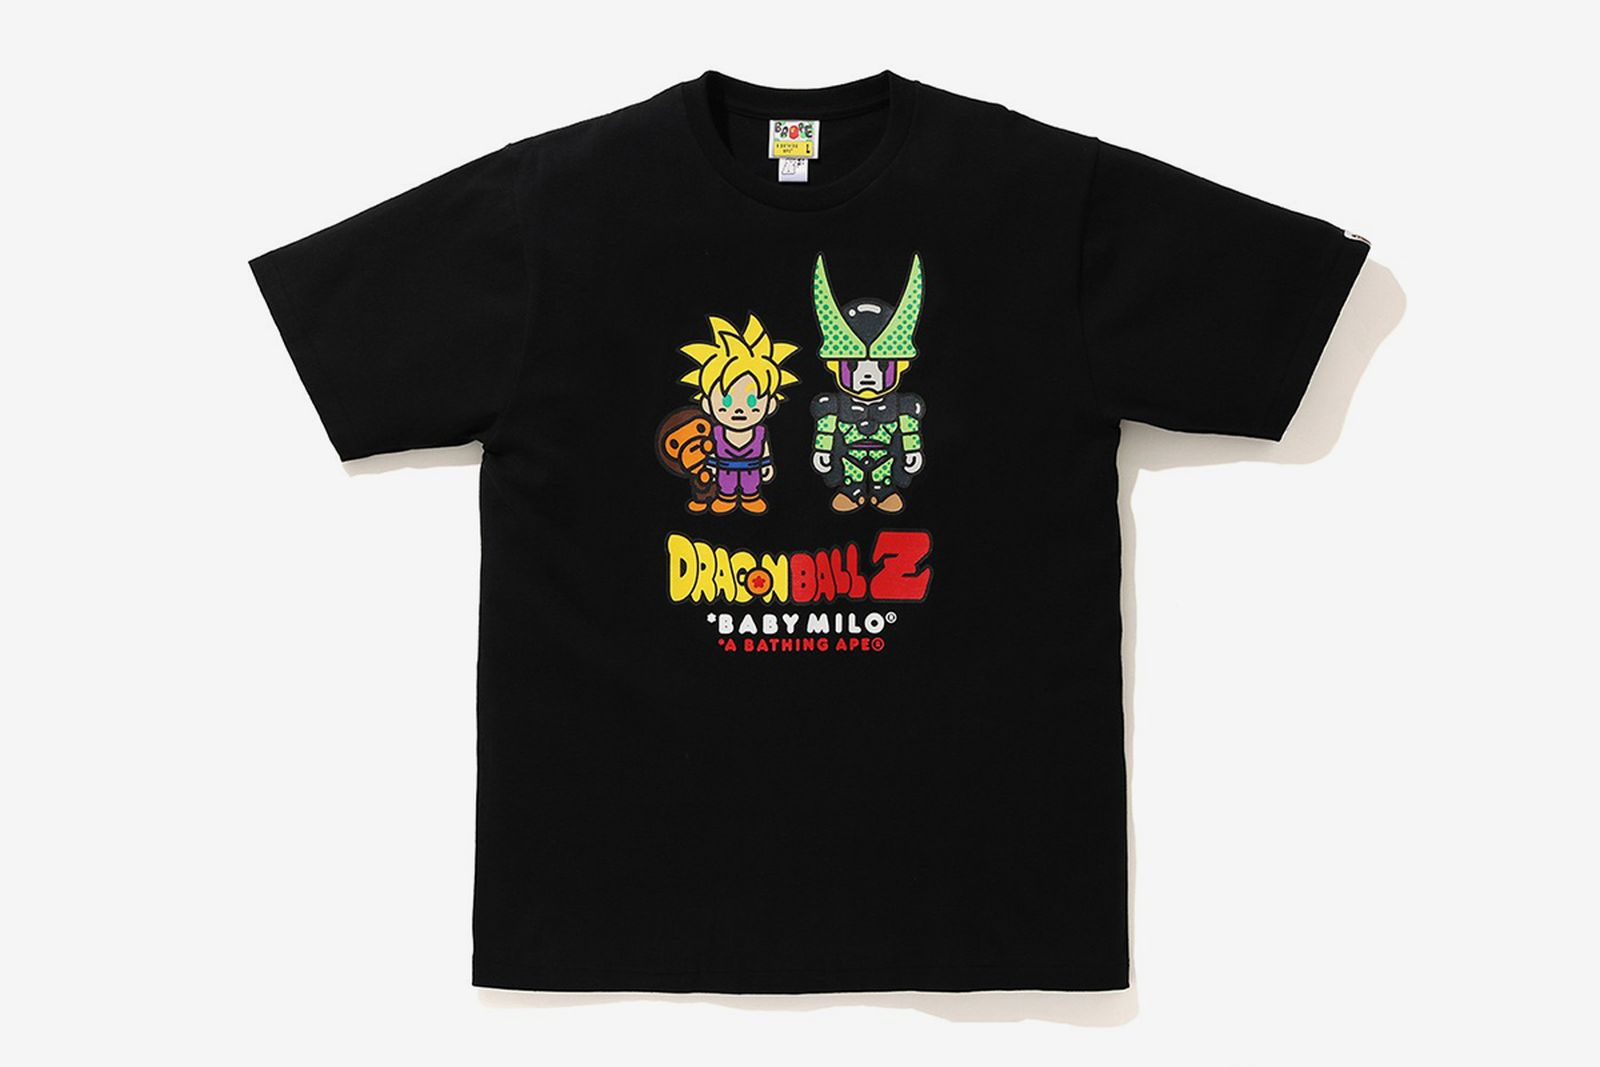 bape-dragon-ball-z-summer-2020-23